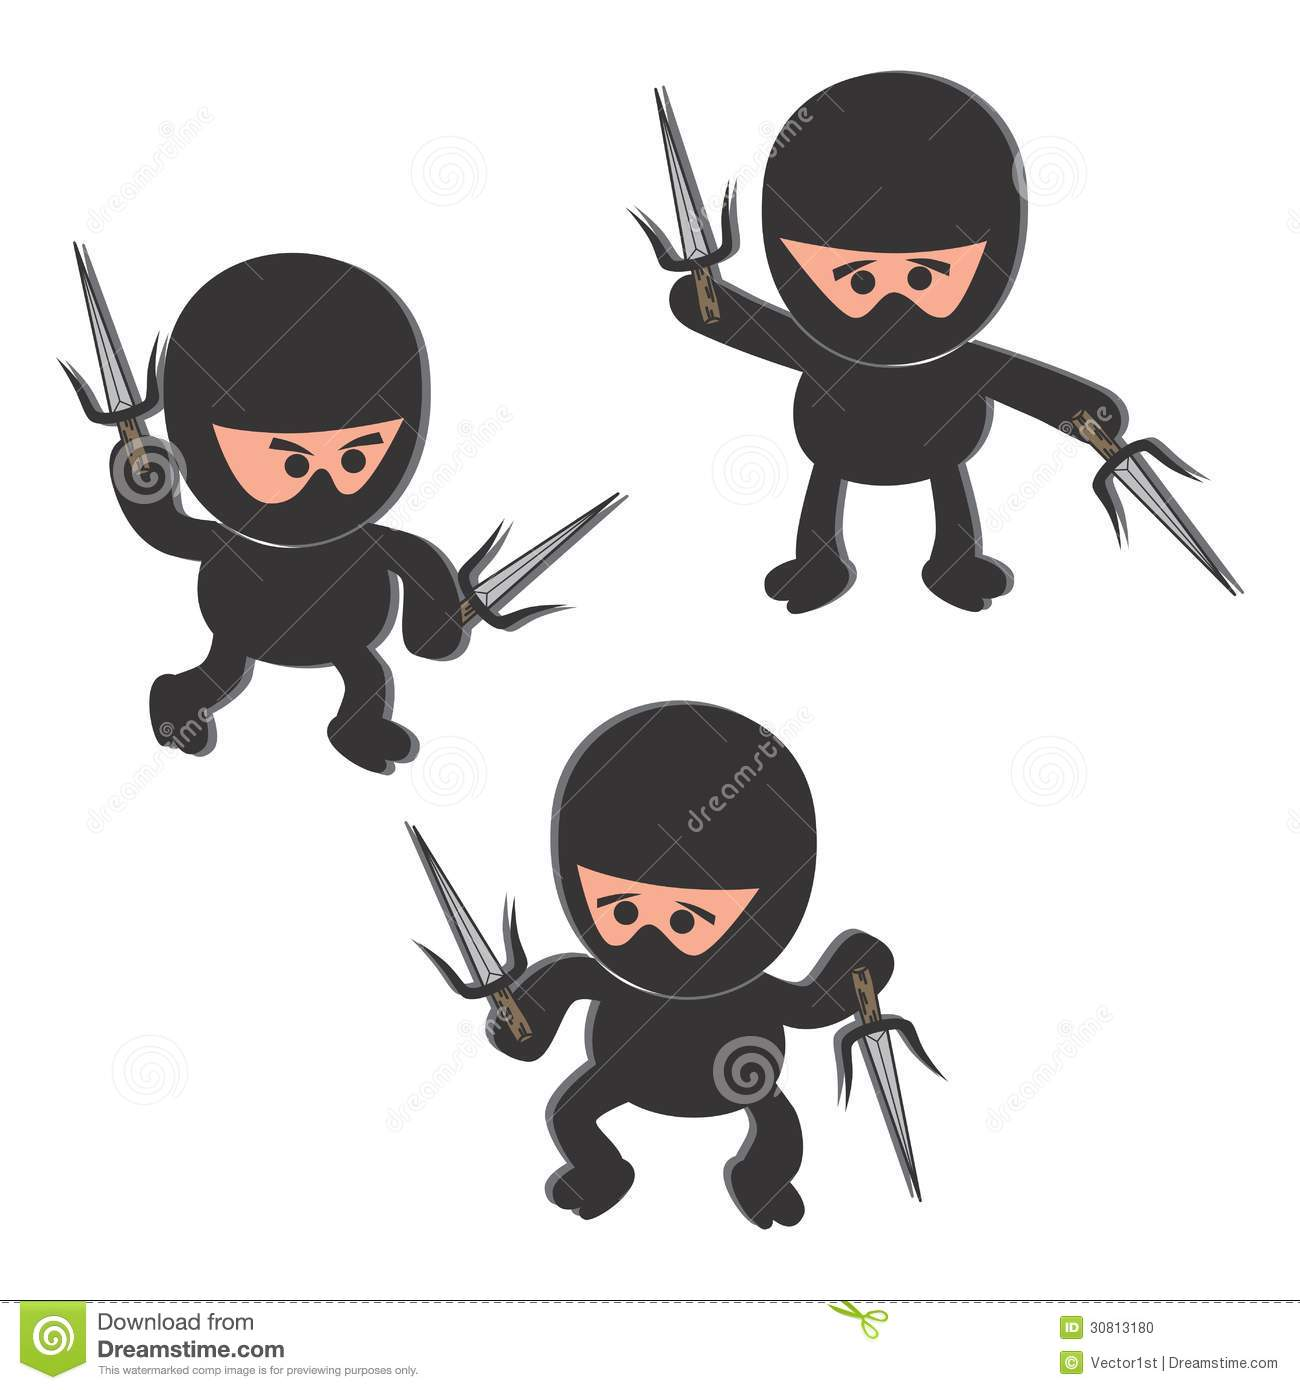 Graphic Design Cartoon Character : Related keywords suggestions for ninja cartoon characters